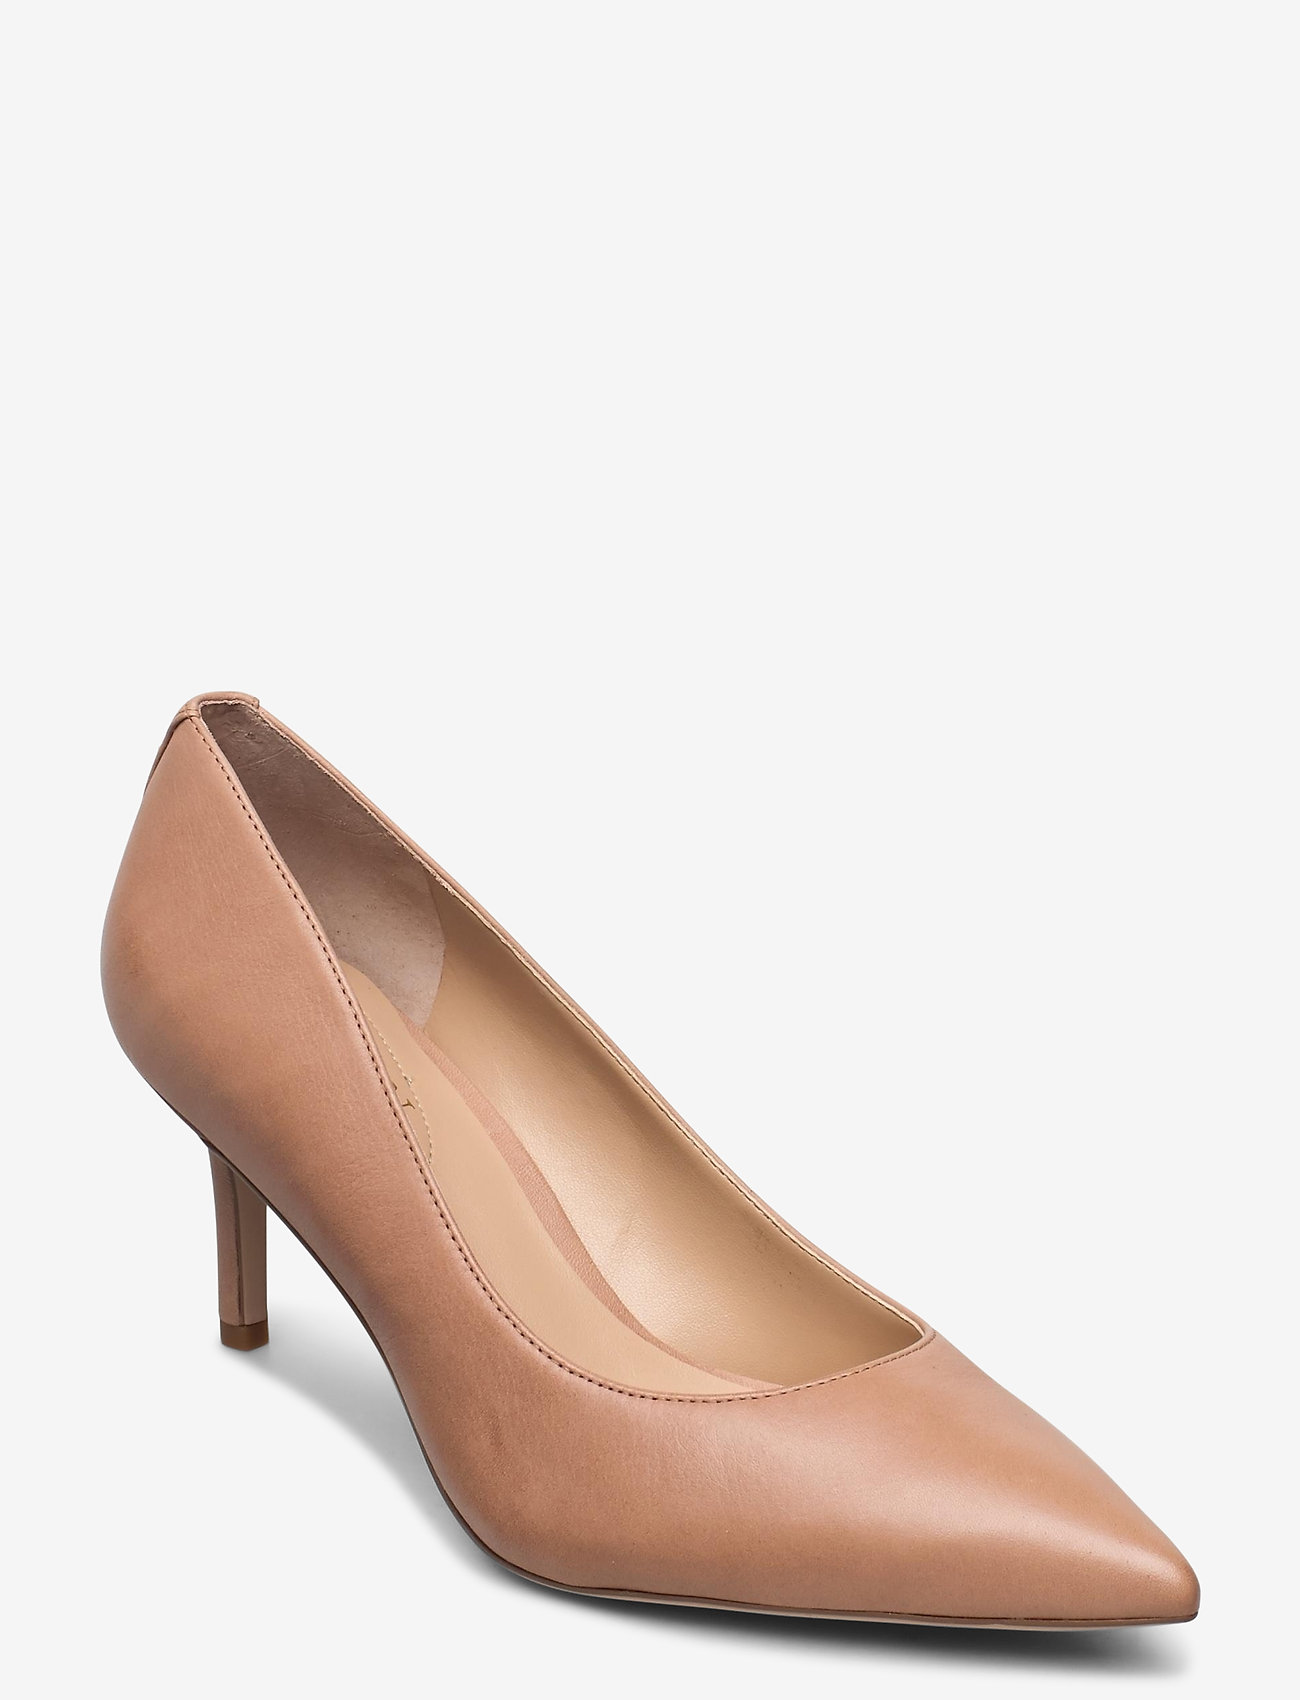 Lanette Leather Pump (Nude) (87.96